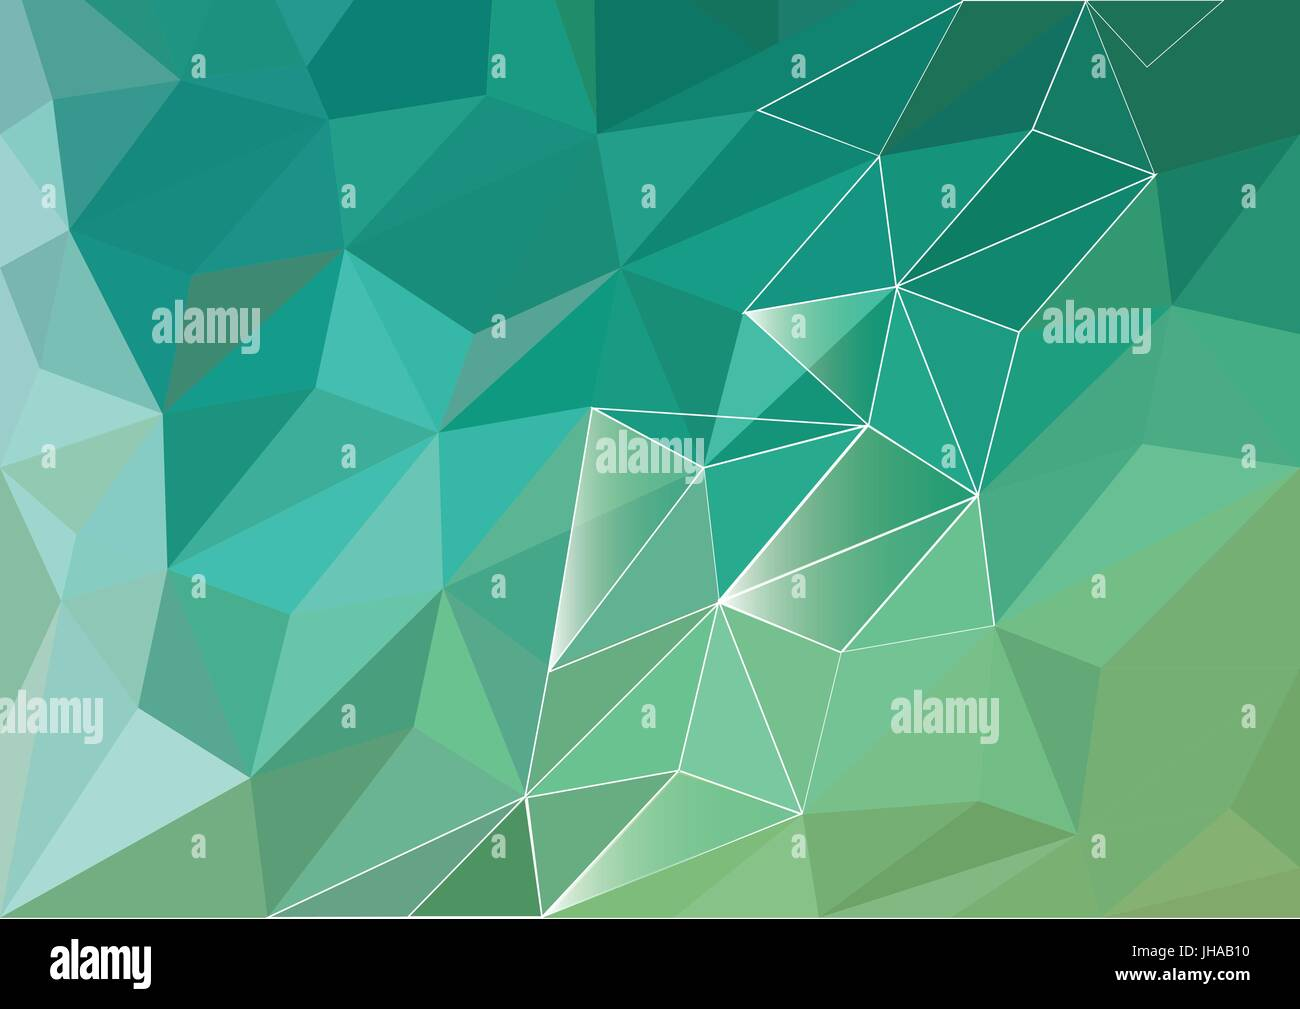 abstract low poly background polygon design triangles and lines